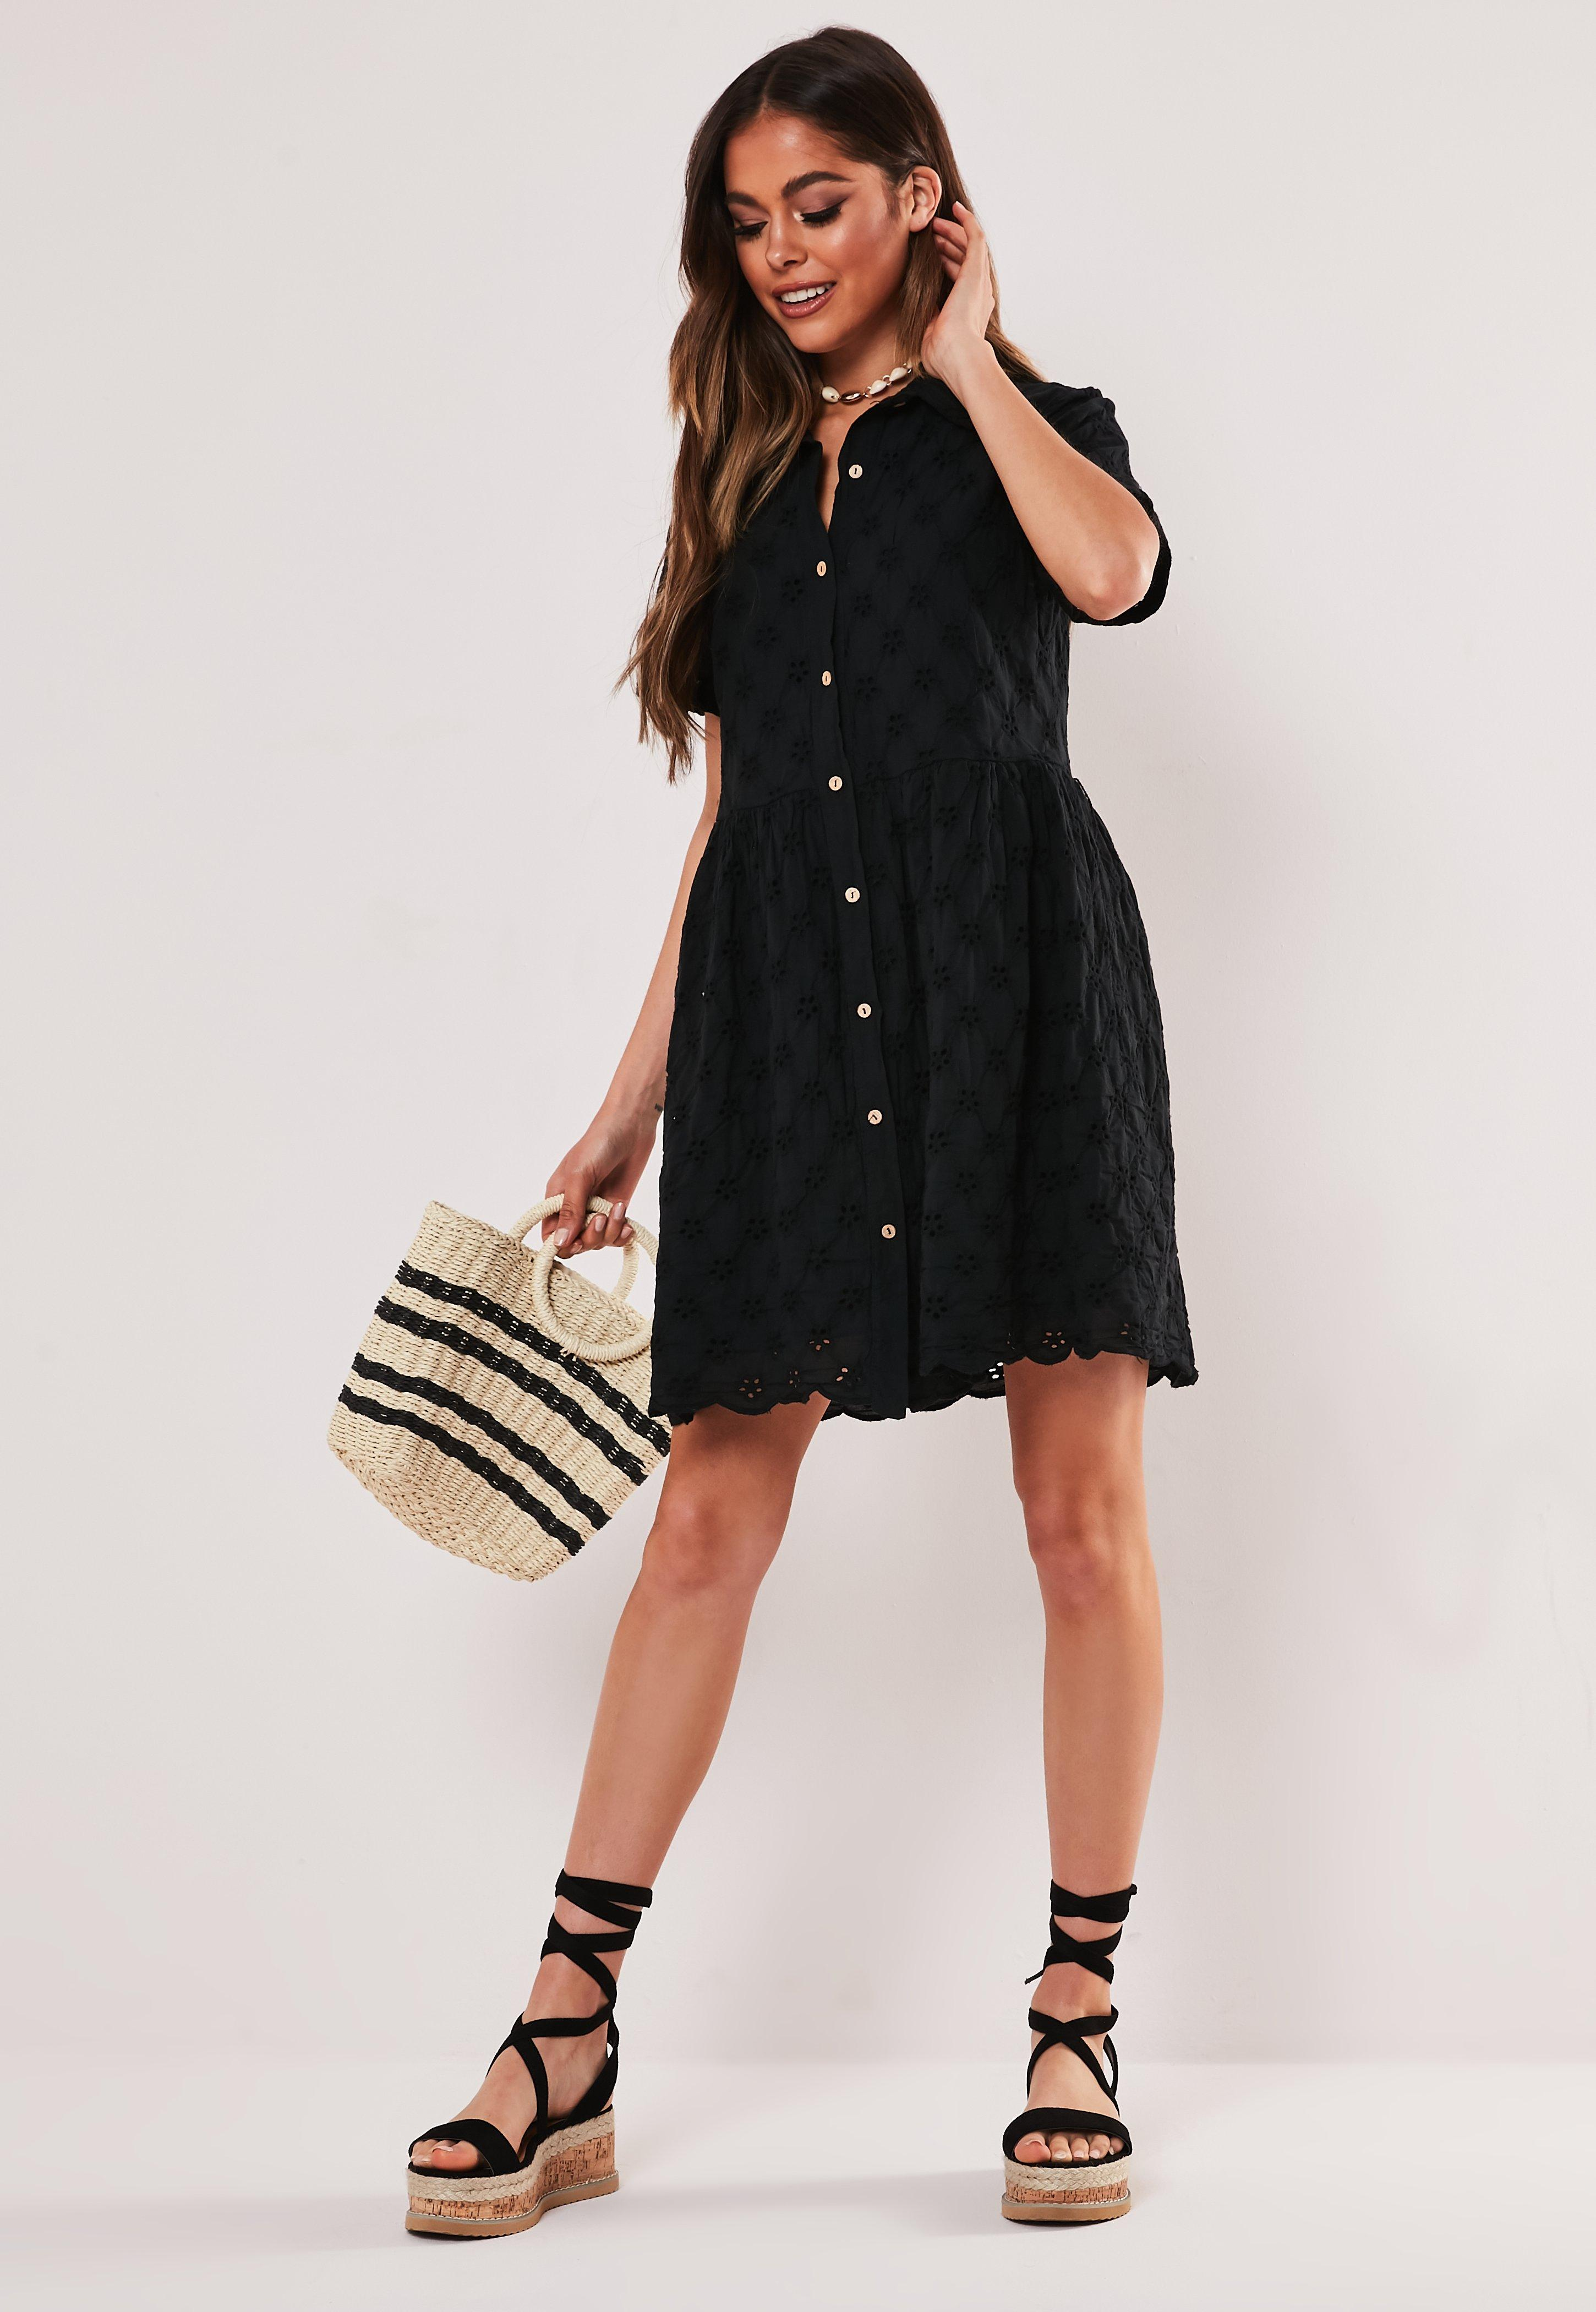 db8cea723e18 Little Black Dresses | Black Dress & LBD's - Missguided